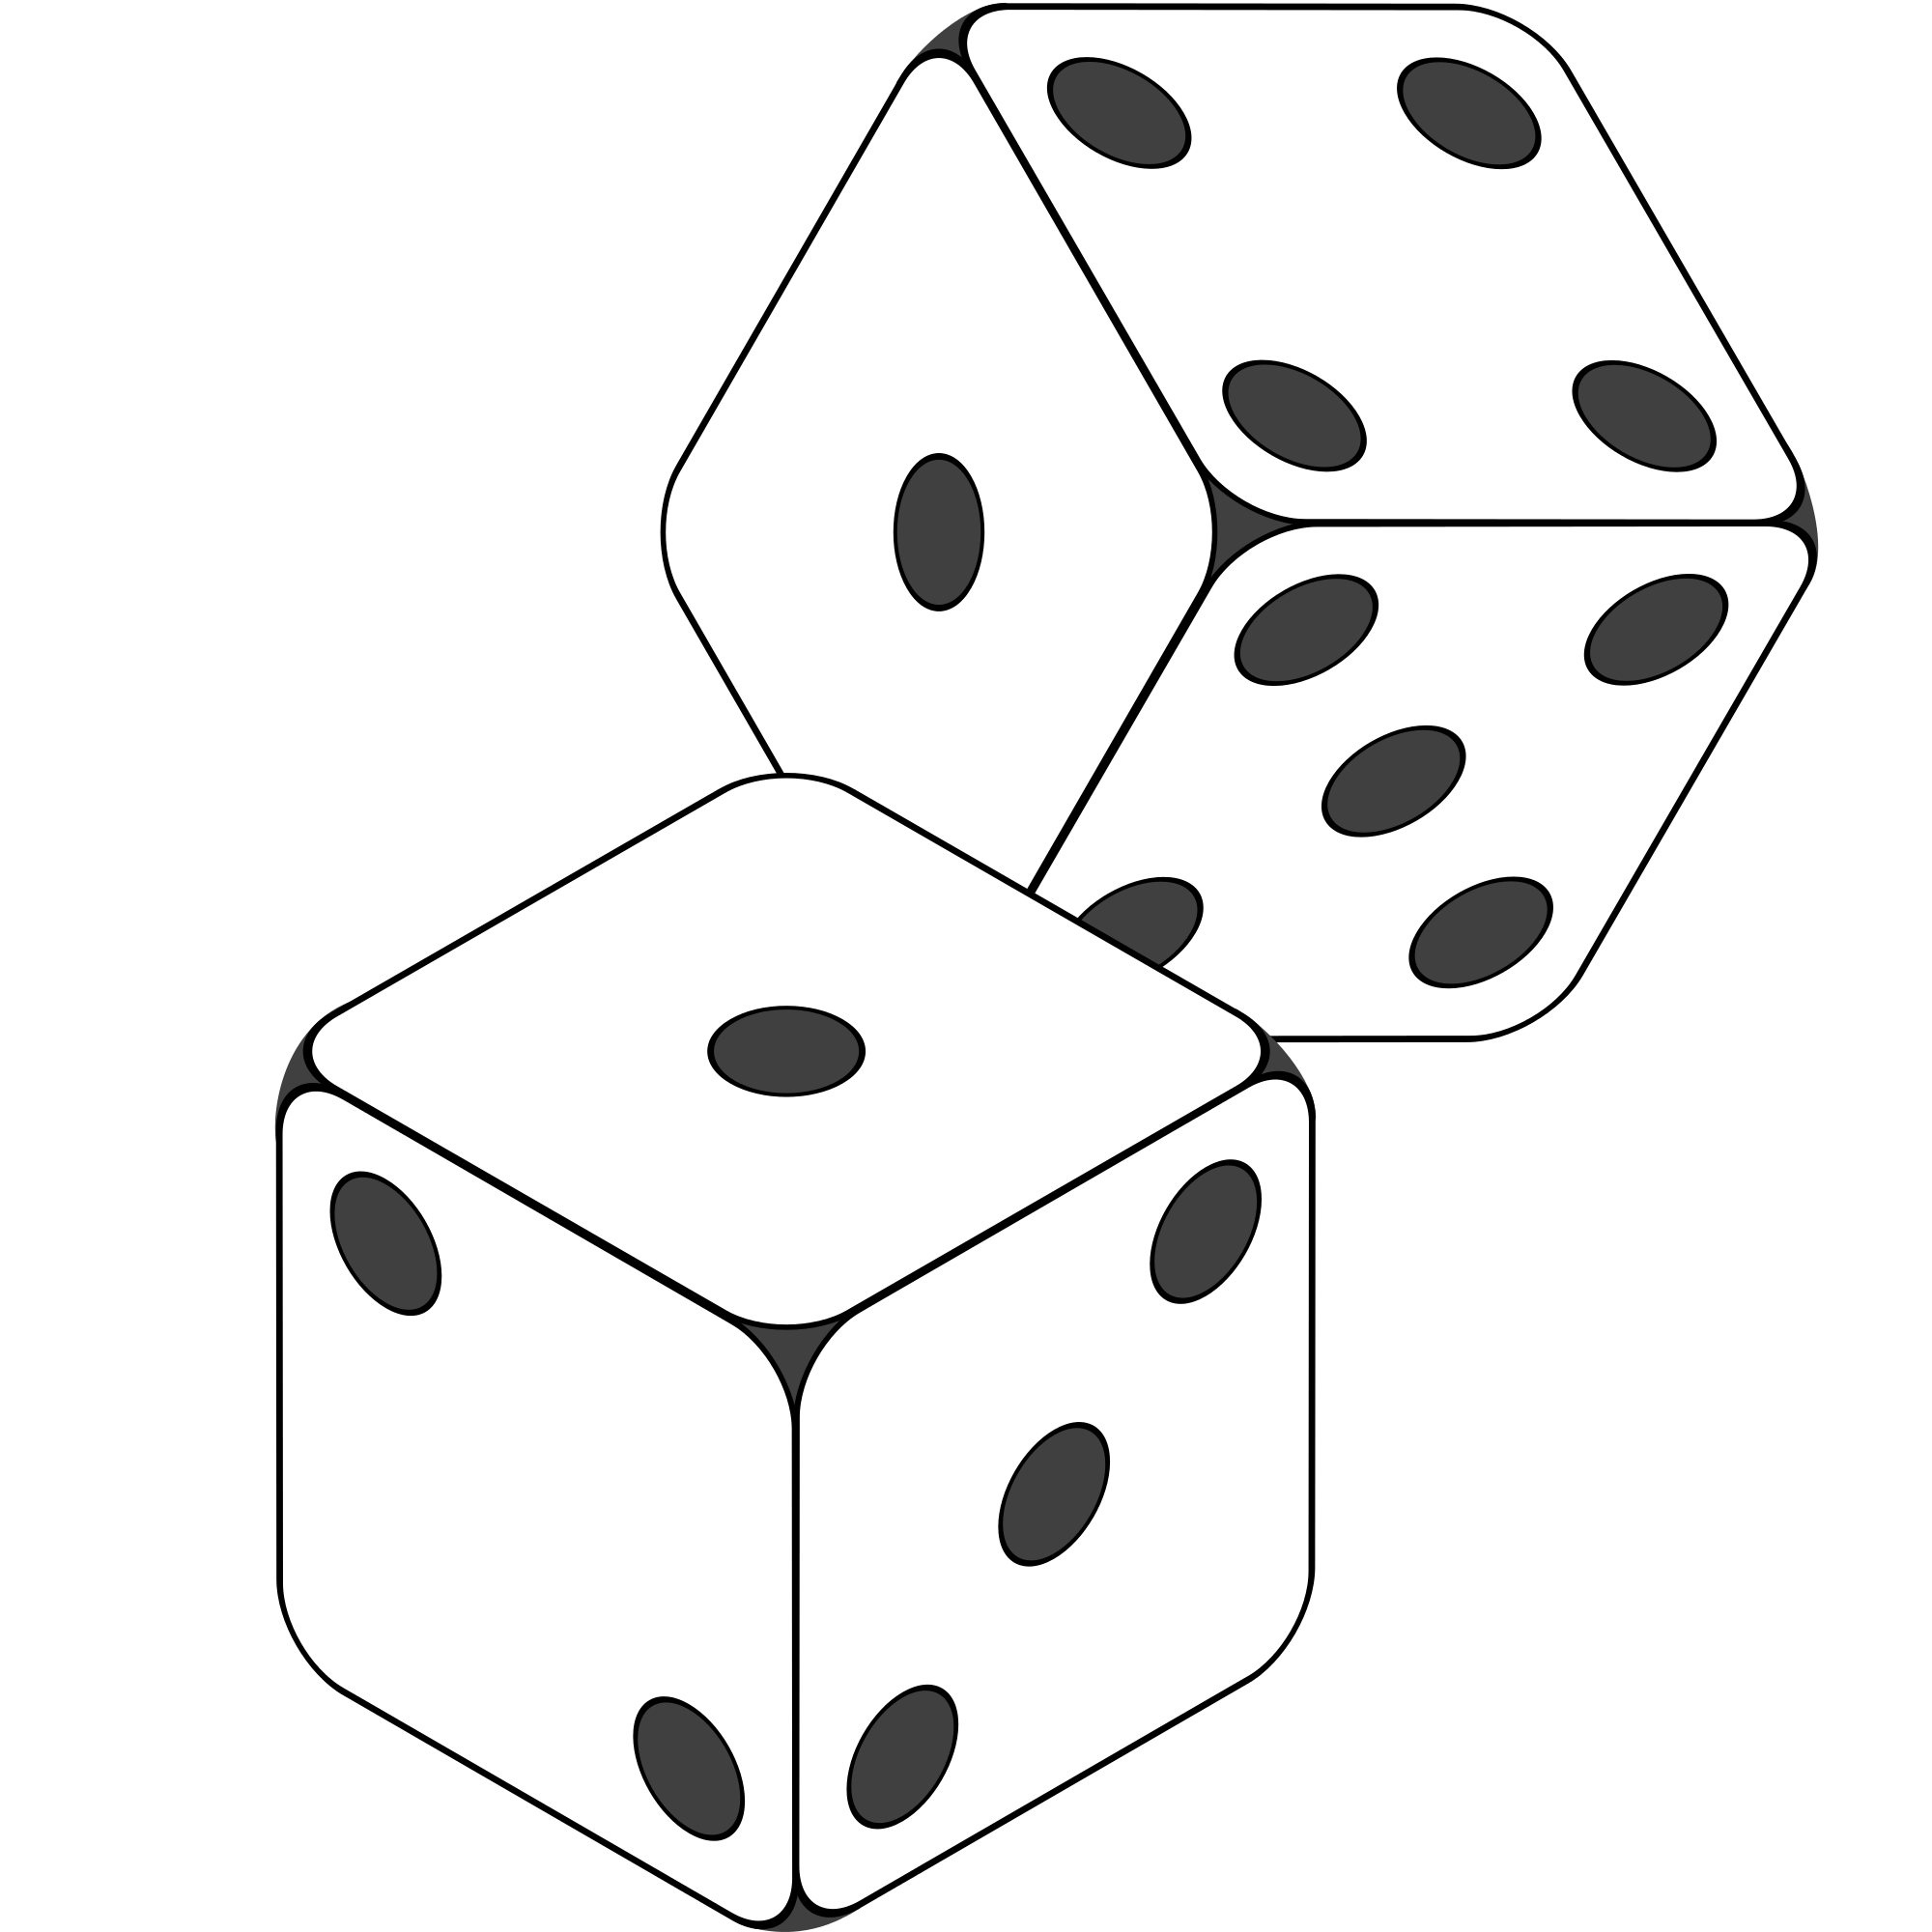 Png dice. File icon svg wikimedia